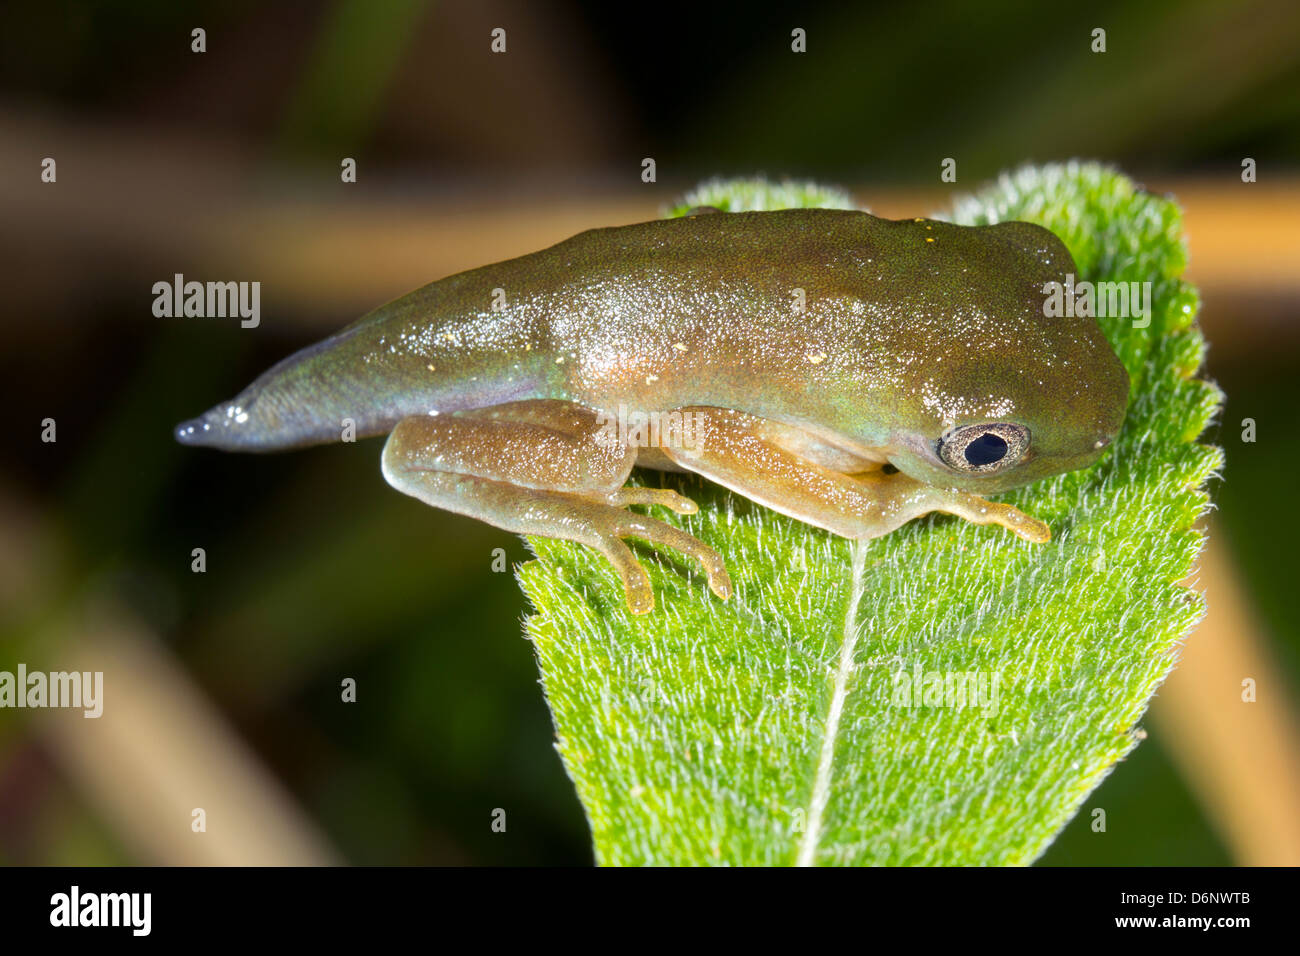 Amphibian metamorphosis - Tadpole changing into a frog above a rainforest pool in Ecuador - Stock Image